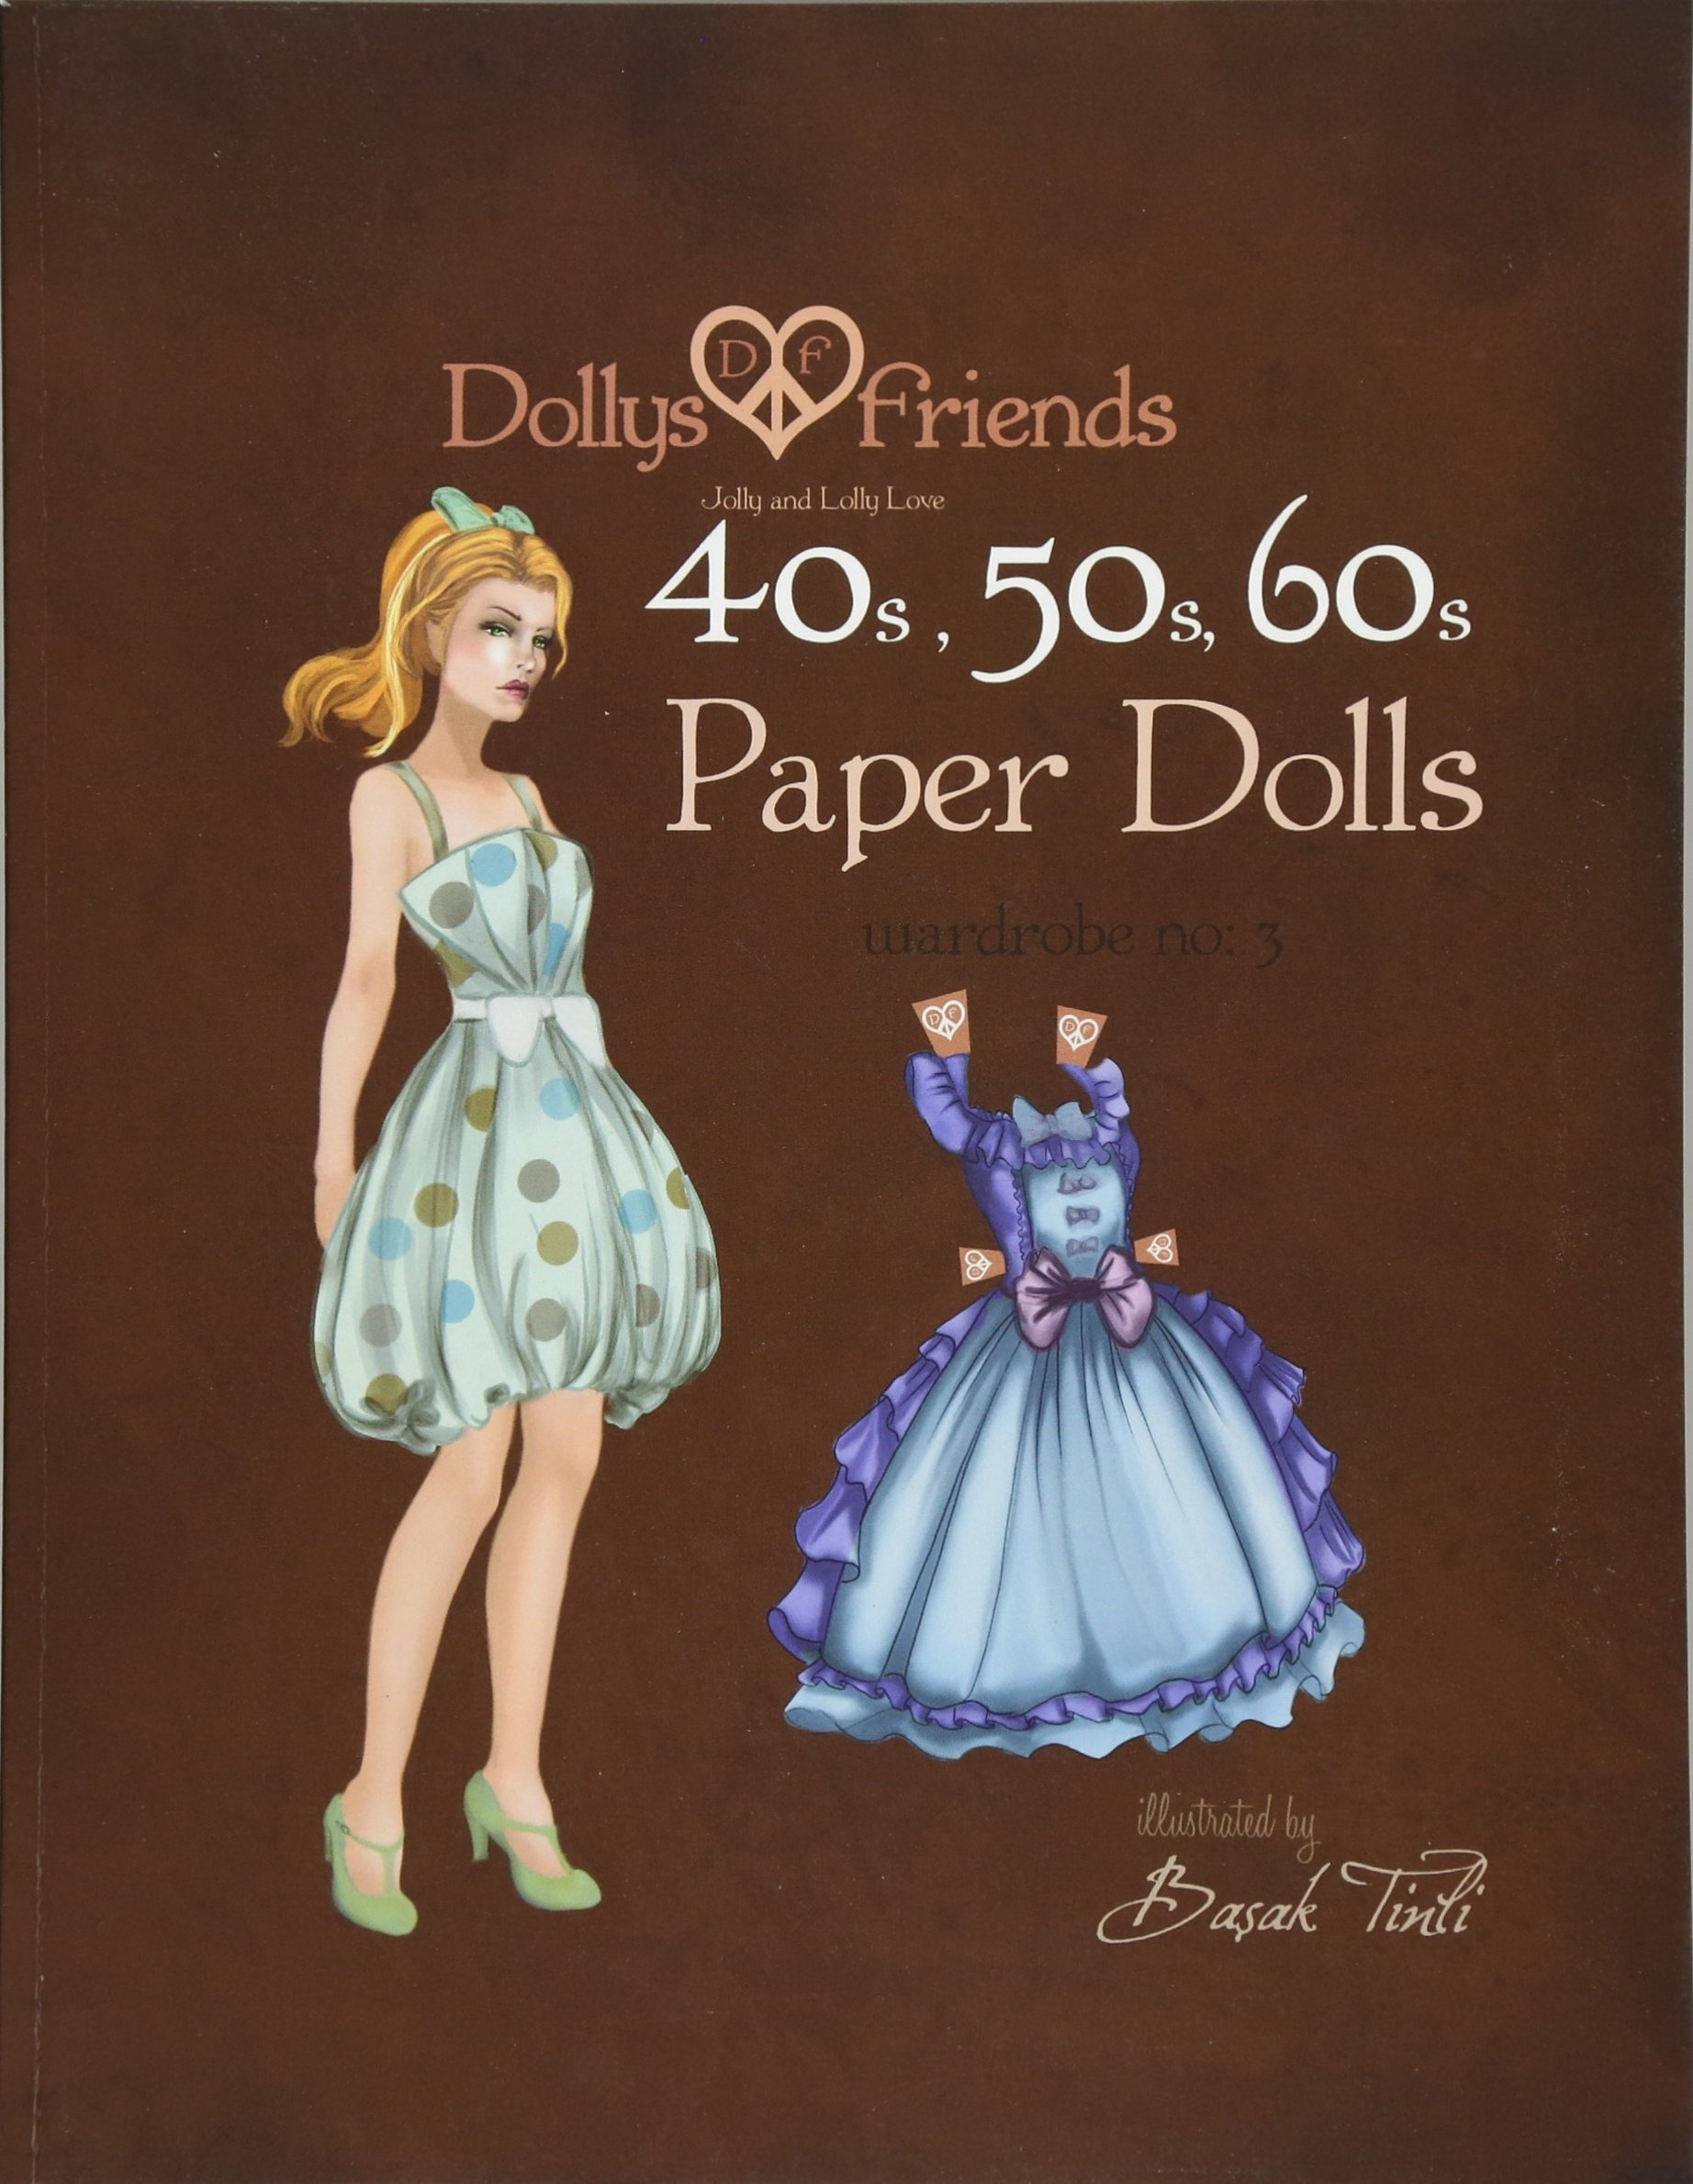 Dollys and Friends 1940s, 1950s, 1960s Paper Dolls: Wardrobe 3 Jolly and Lolly Love vintage dresses (Volume 3) ebook